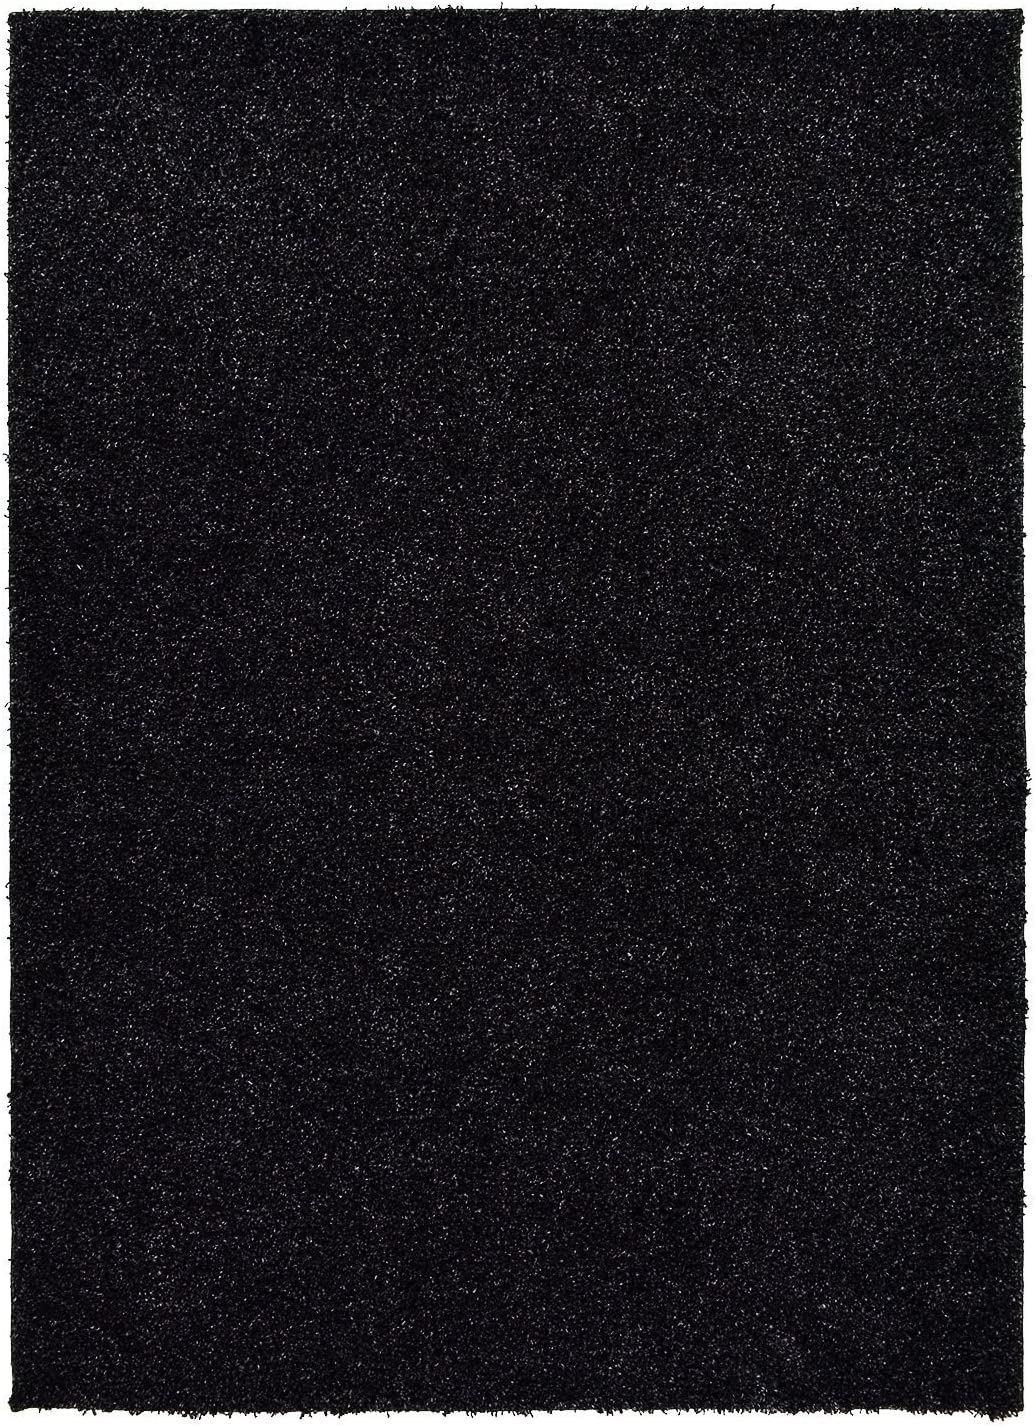 RugStylesOnline Solid Color New Shag Area Rug Rugs Shaggy Collection Anthracite Black, 7 10 x9 10